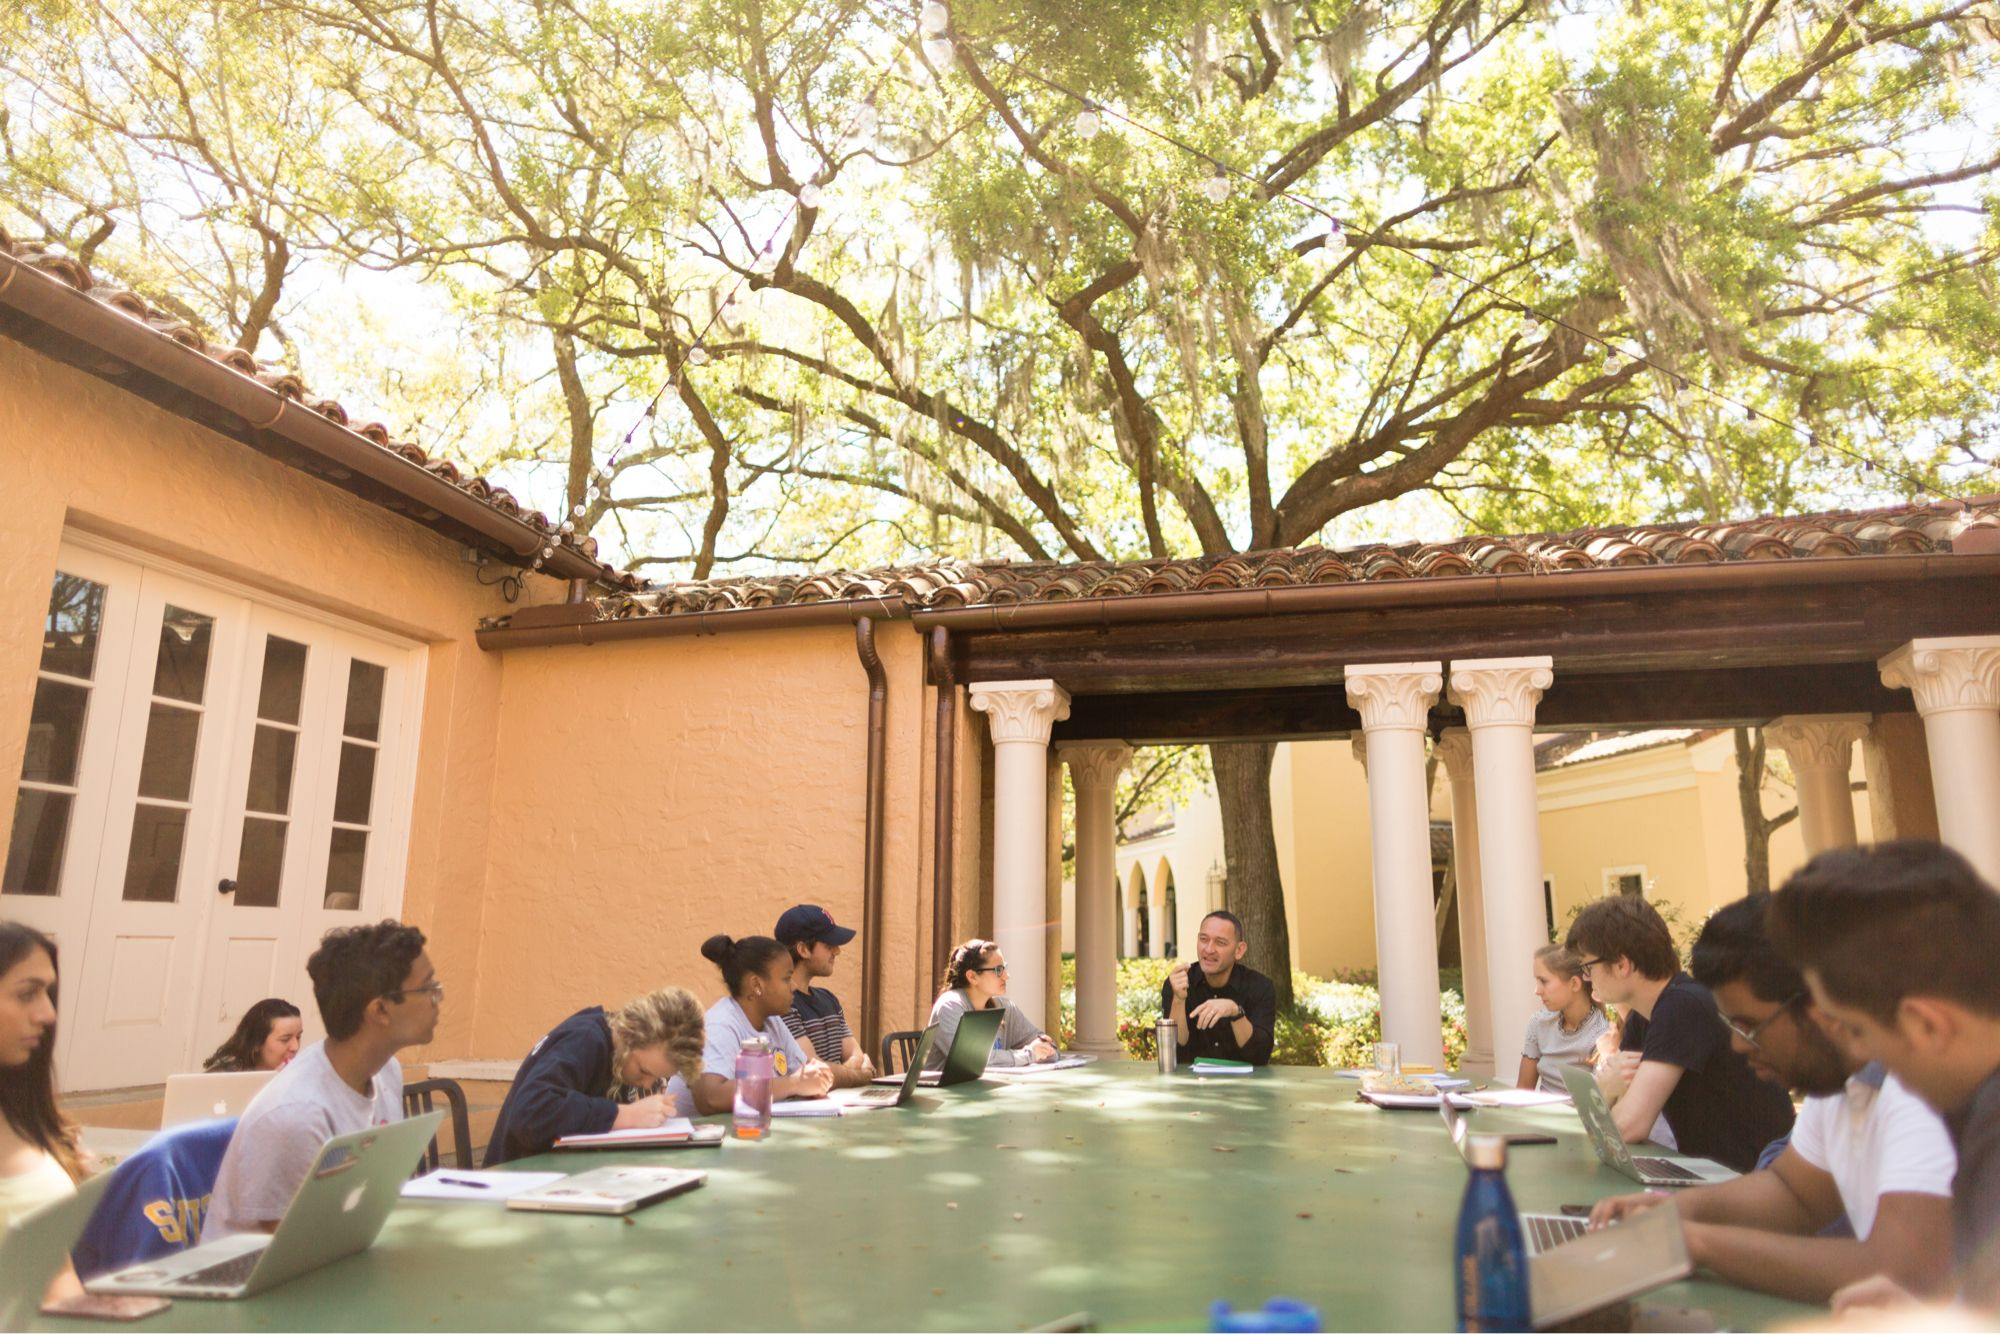 Rollins students participating in an outdoor classroom.